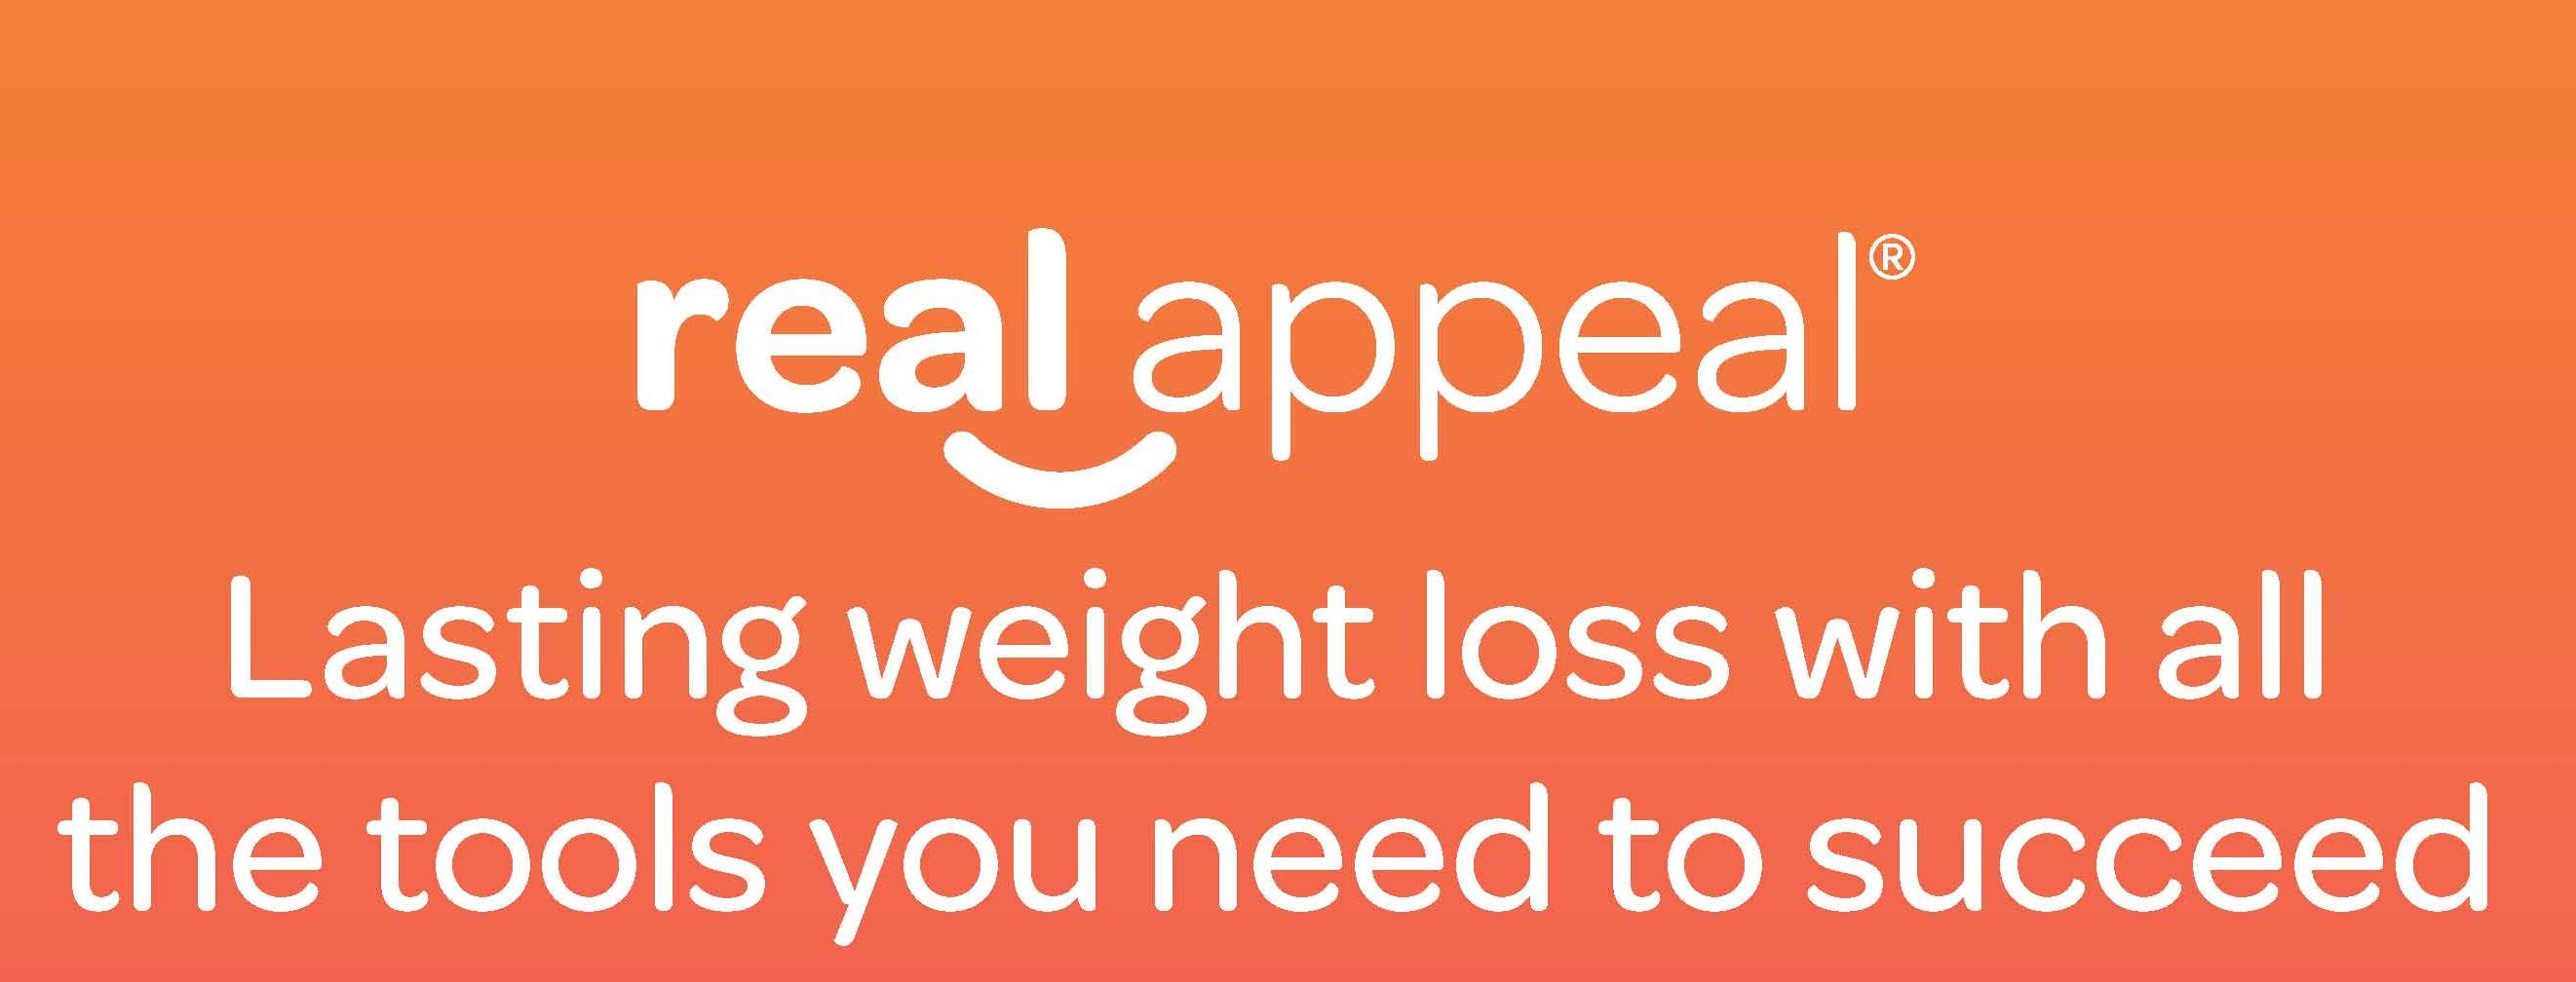 Real Appeal weightloss with all the tools you need